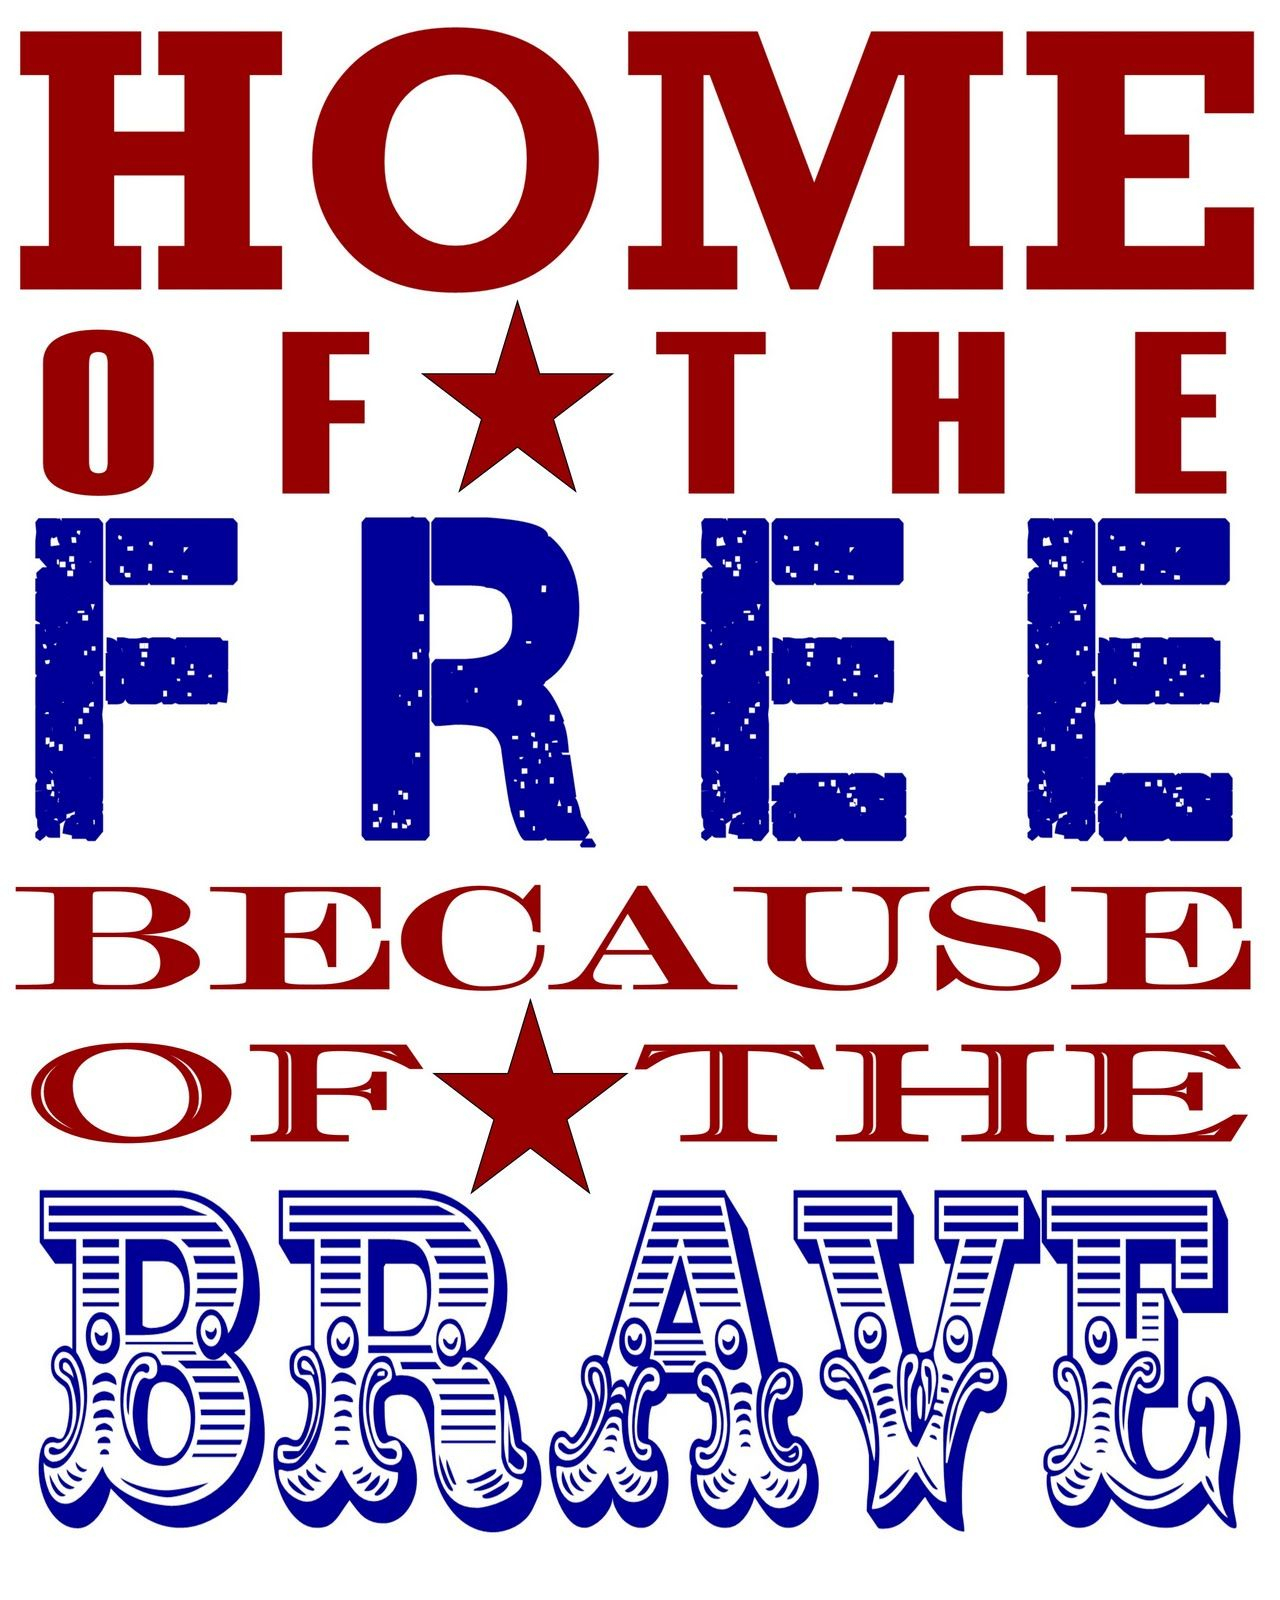 Patriotic Printable   Homecoming   Pinterest   Memorial Day, Amore - Home Of The Free Because Of The Brave Printable